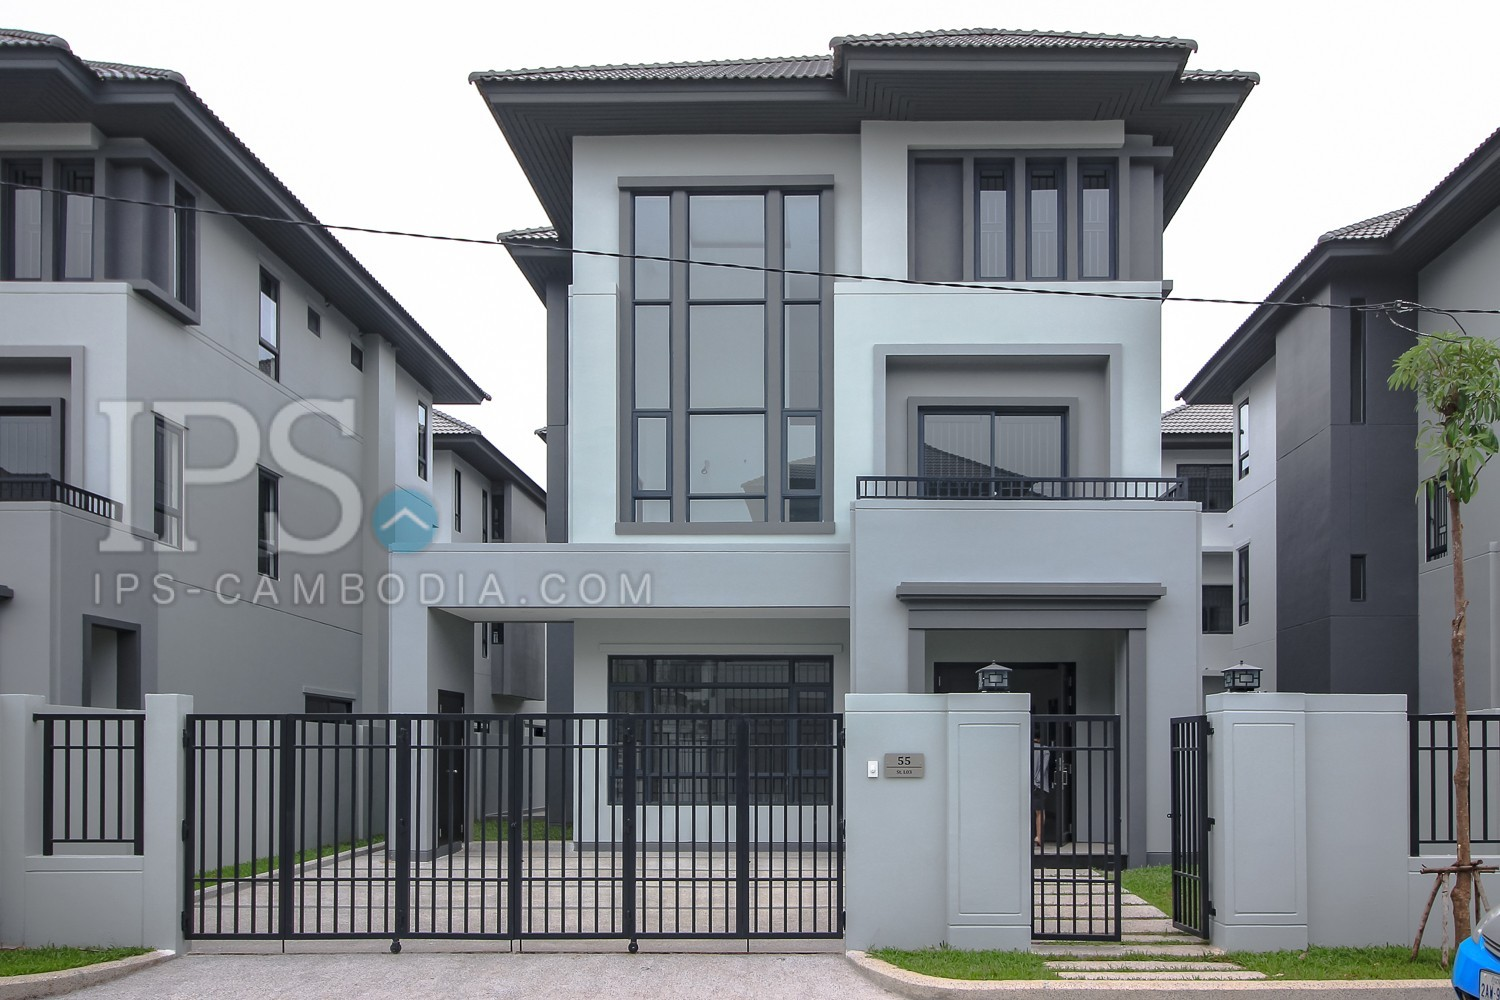 5 Bedroom Villa For Rent - Hun Sen Blvd, Phnom Penh